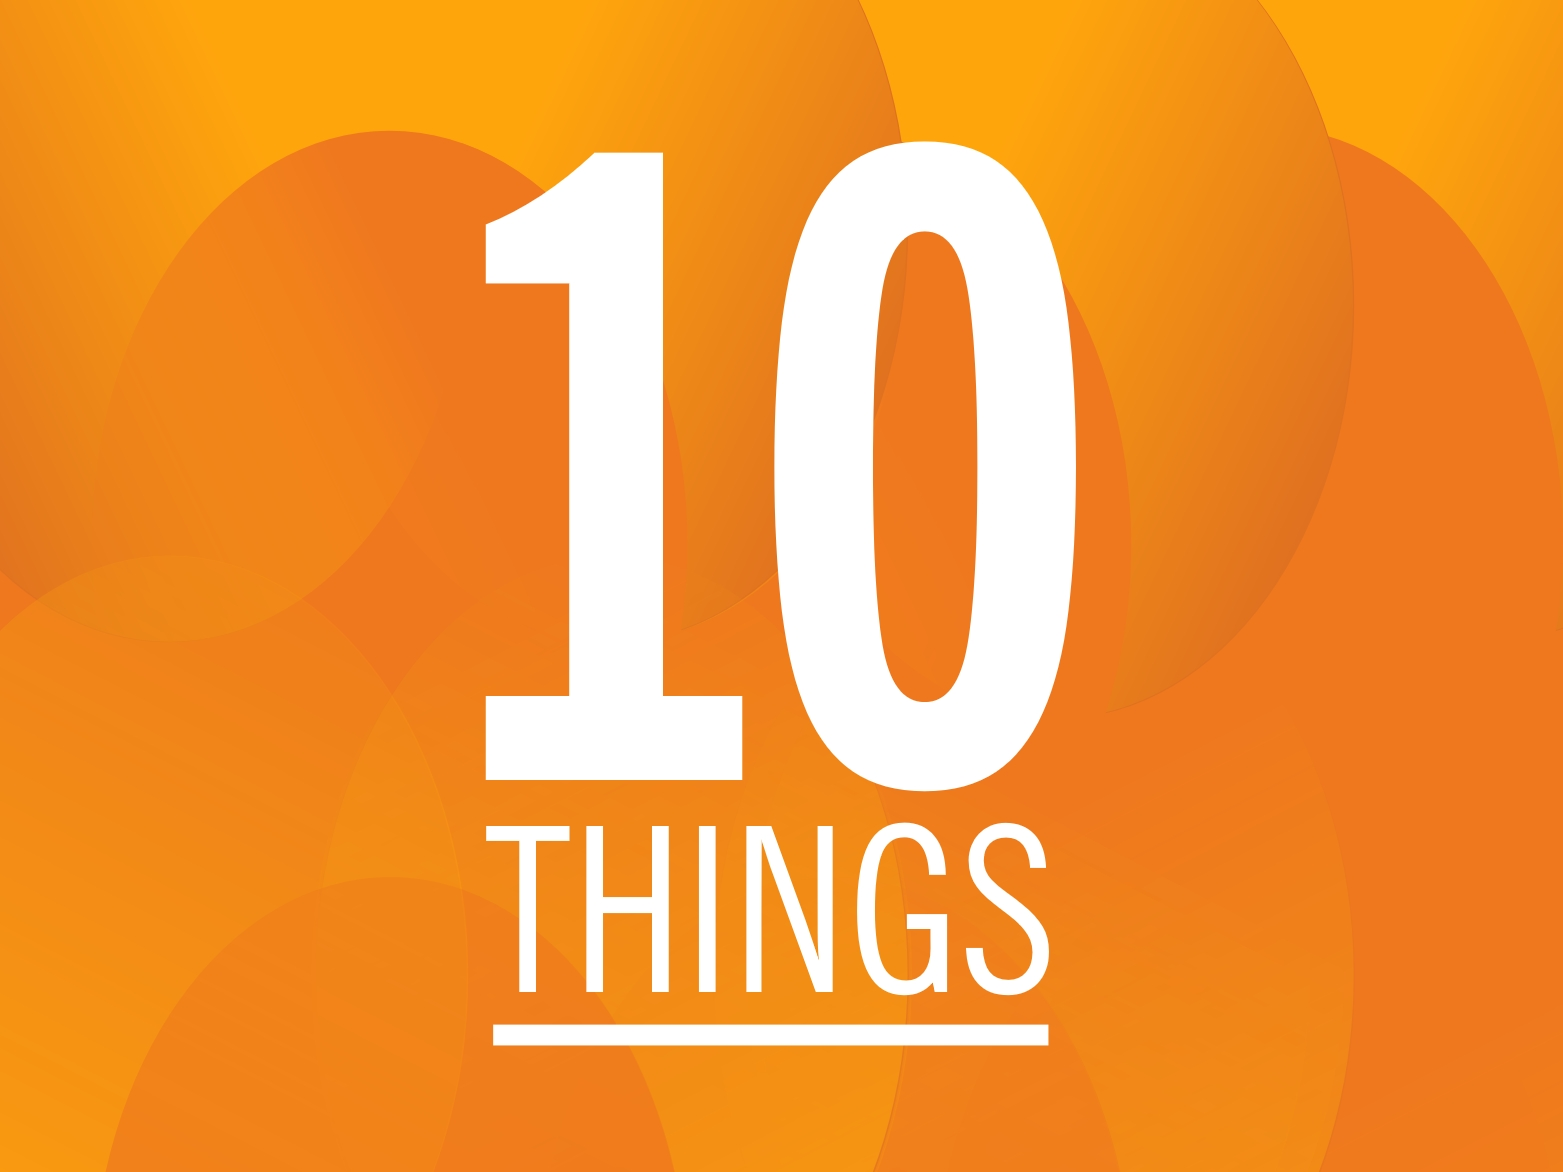 Top 10 things you may not have known that we provide for our members